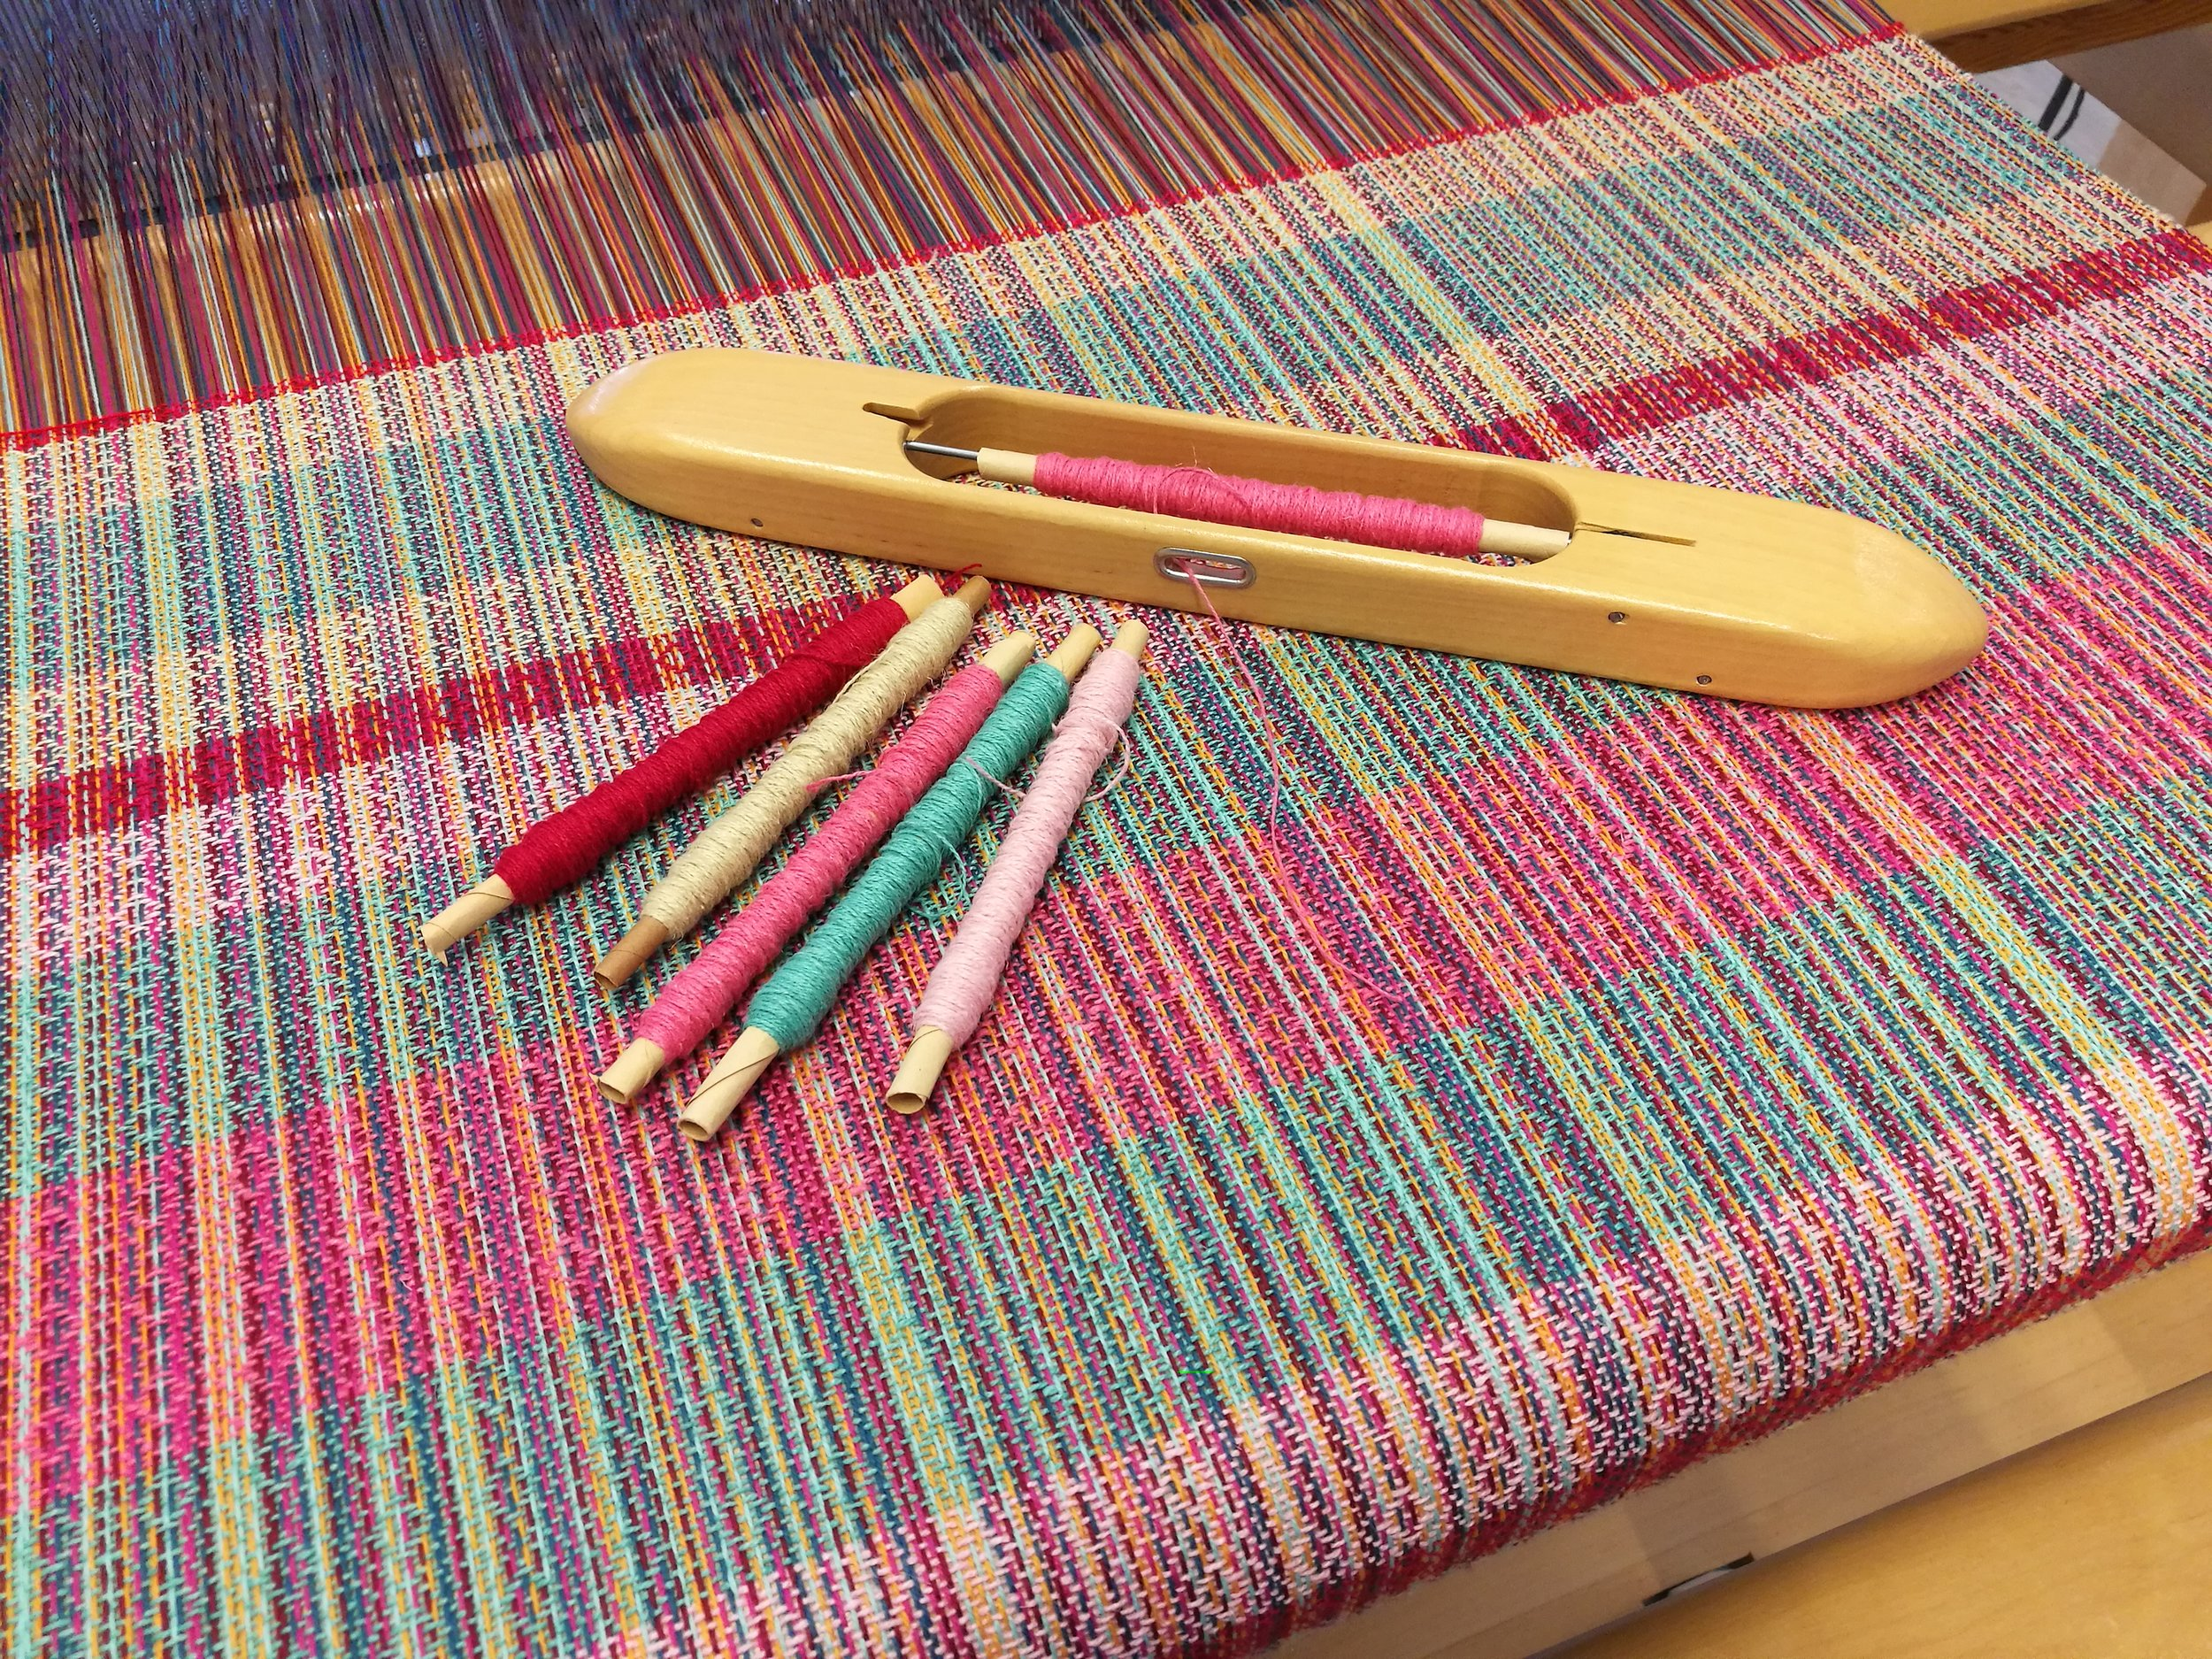 Fabric woven with different colours